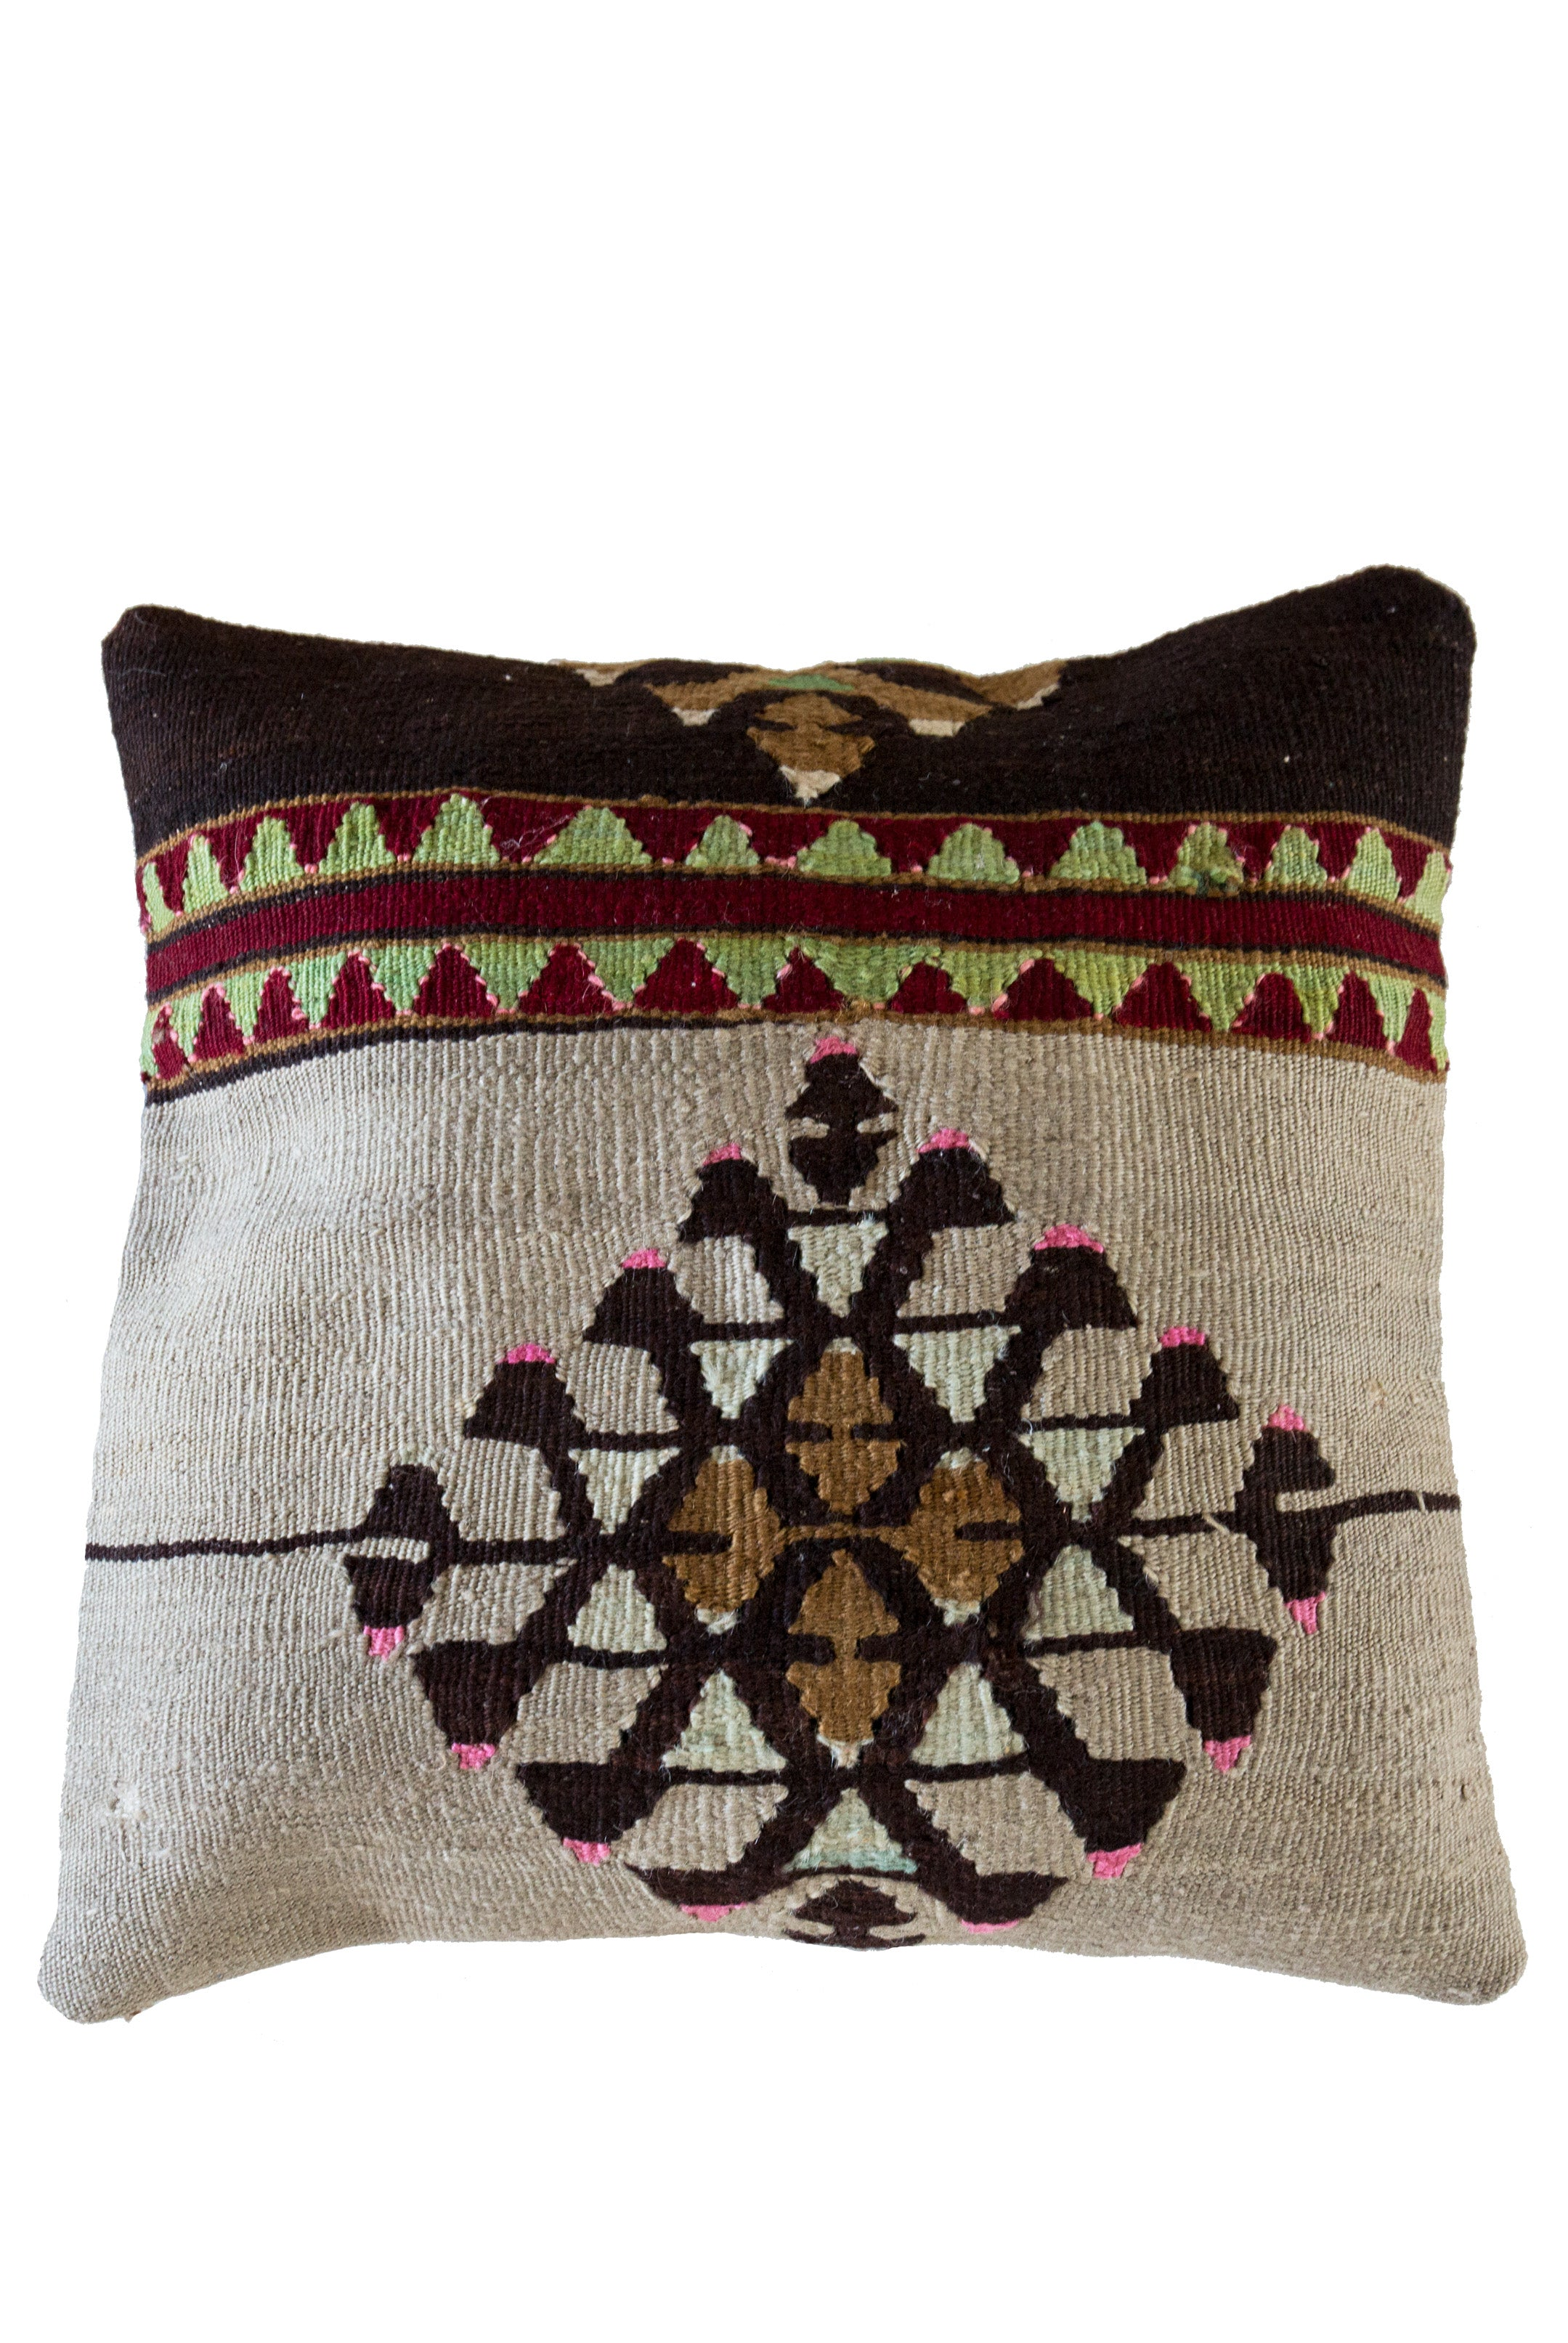 Trillionaire Turkish Kilim Cushion